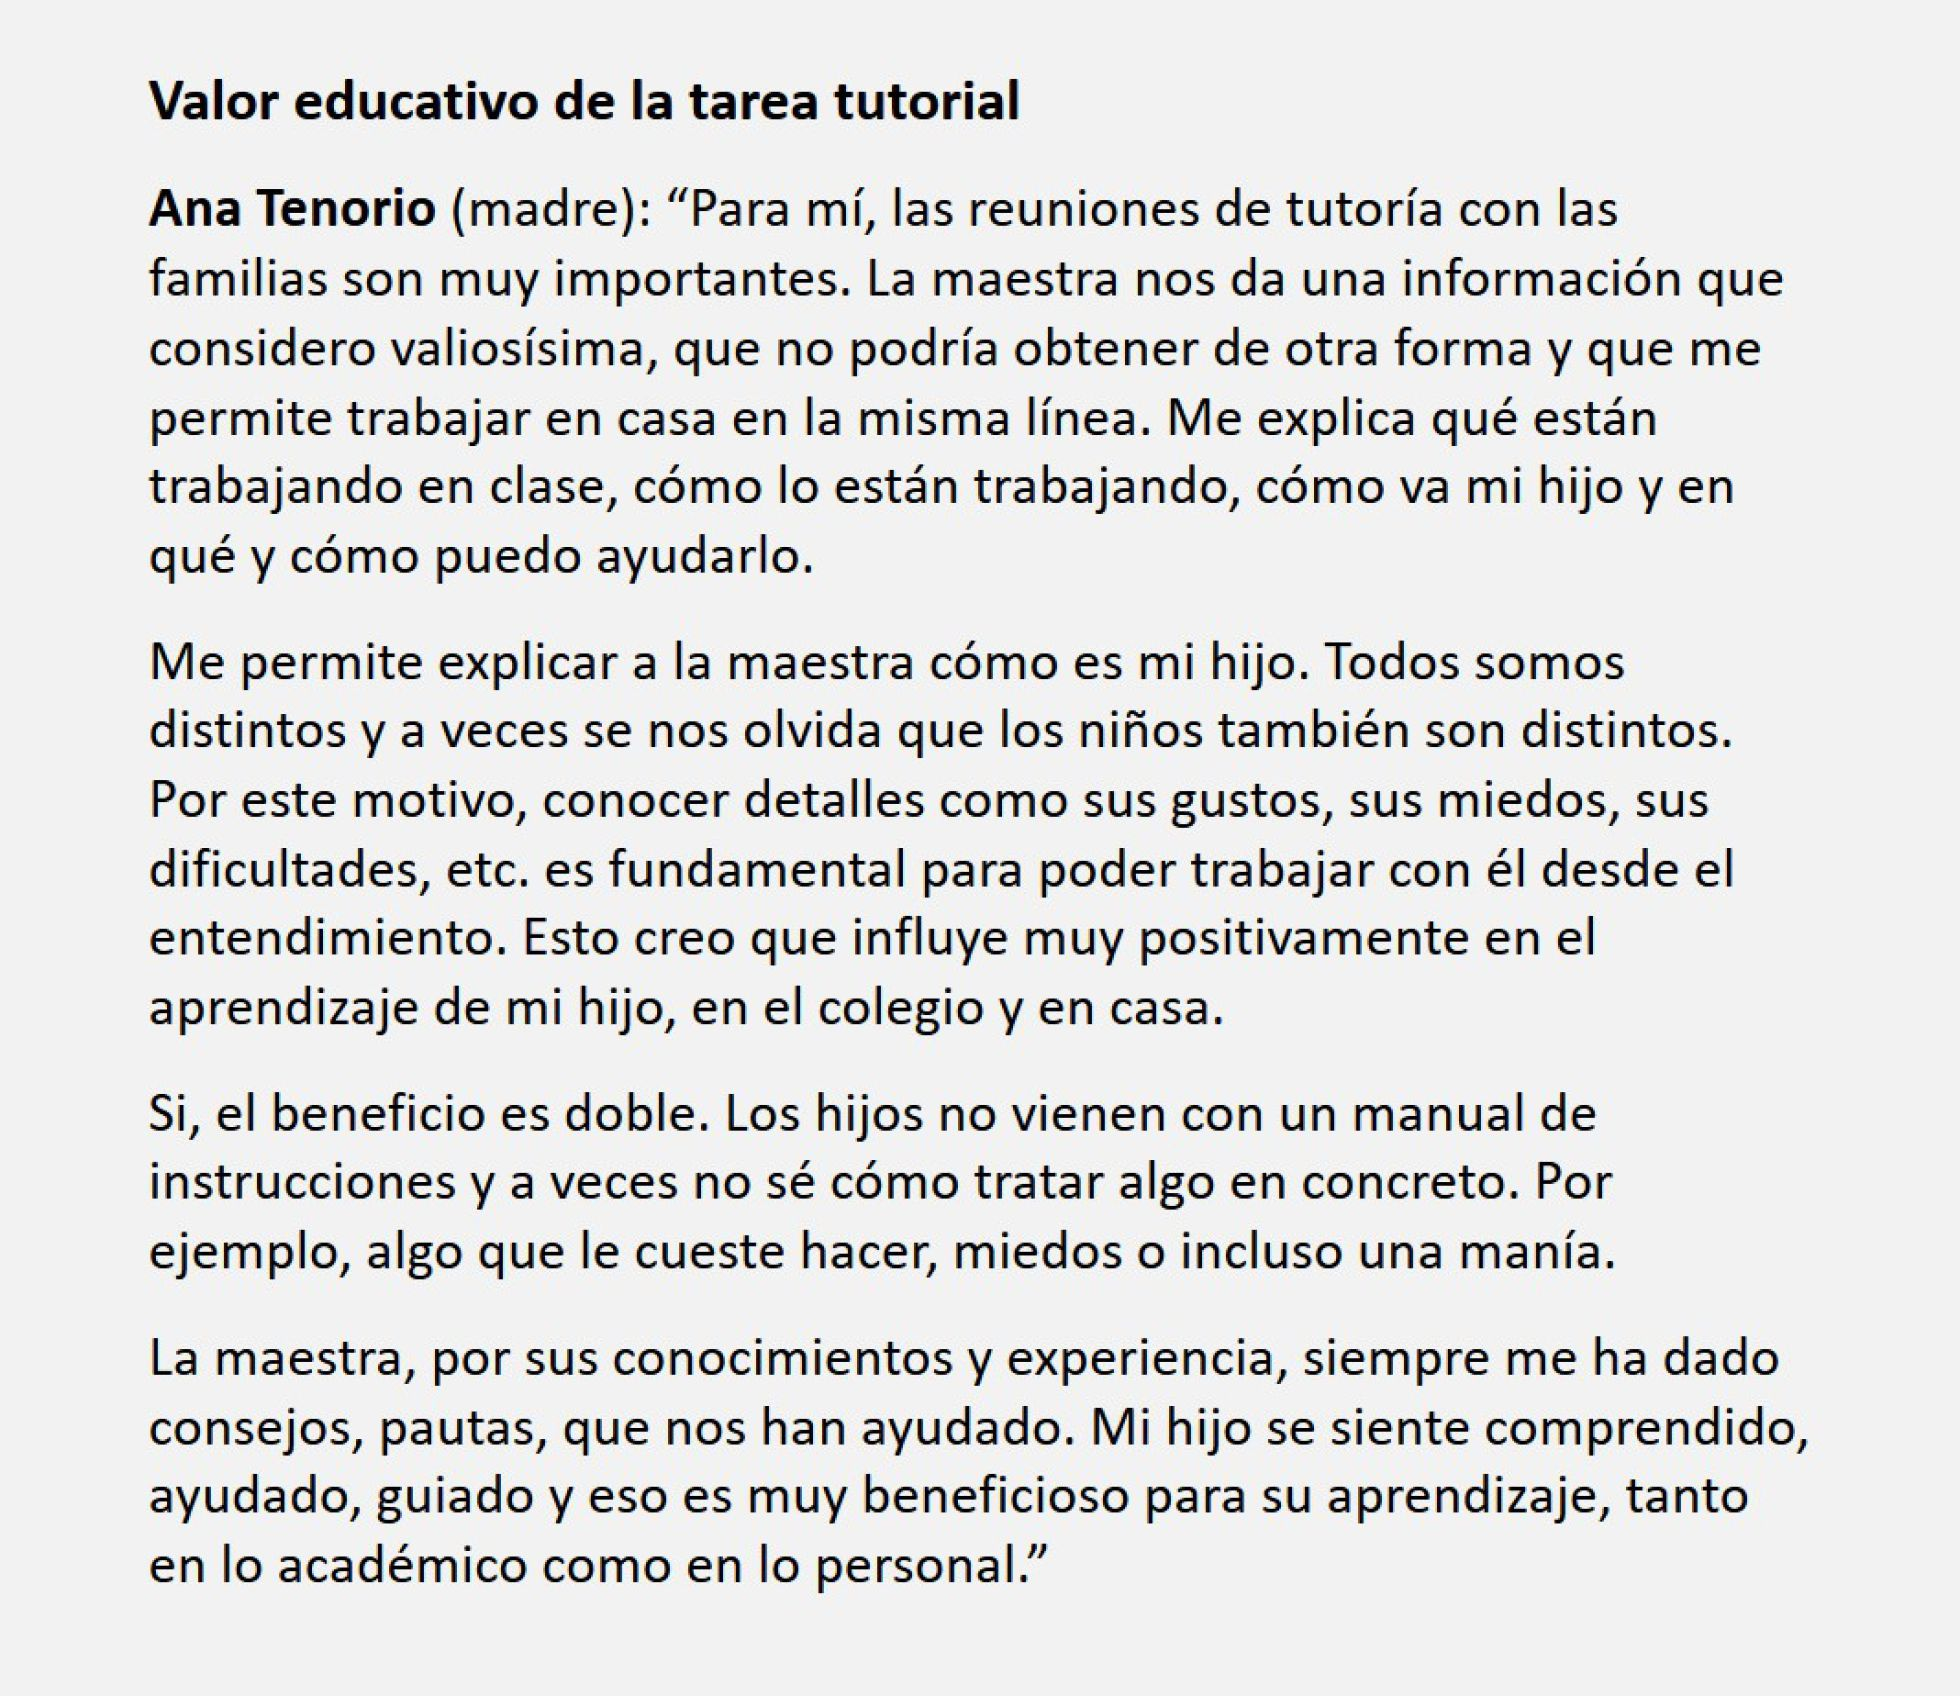 Valor educativo de la tarea tutorial